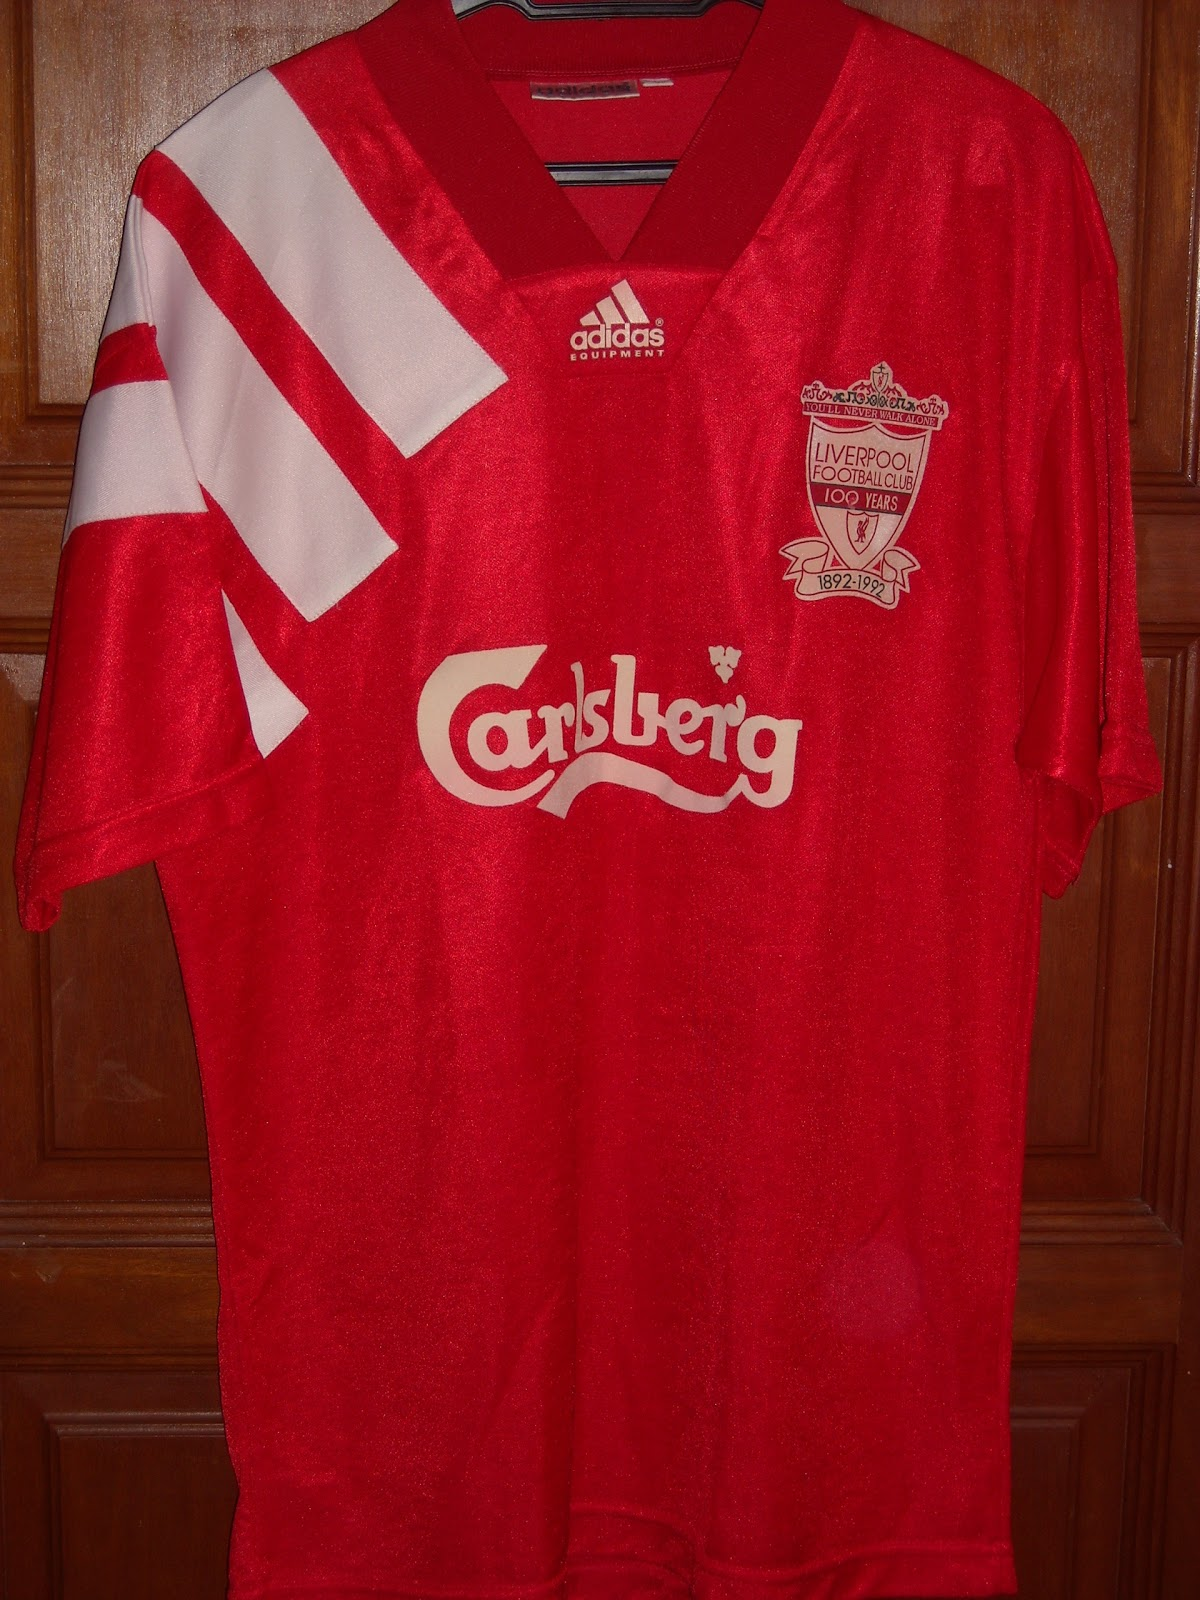 buy popular 850b2 ea264 Jersi Bolasepak - Football Jerseys: Liverpool Home 1992/93 ...